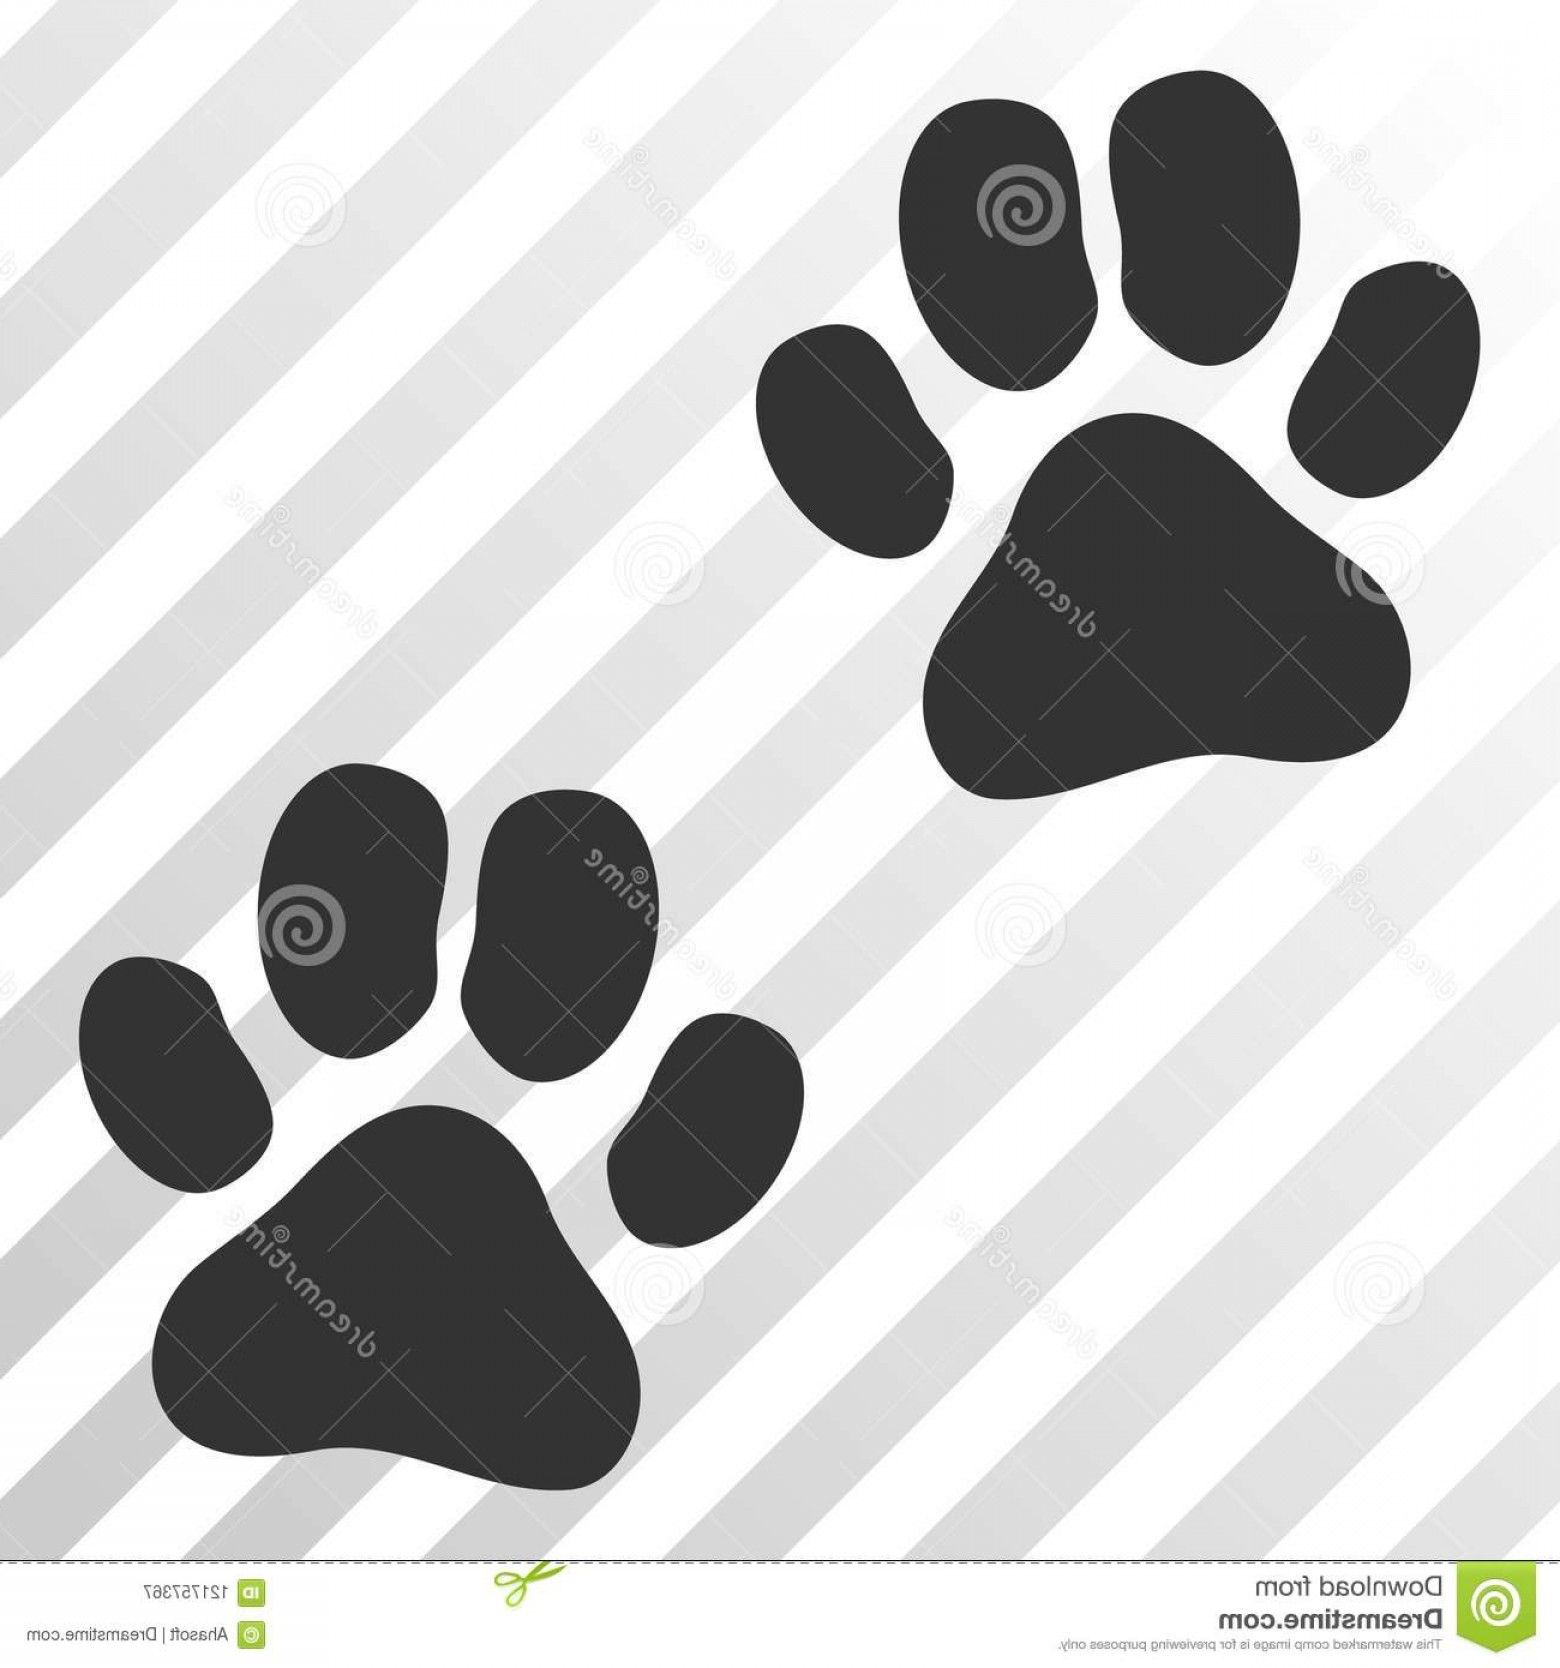 Footprint Vector EPS: Paw Footprints Vector Eps Icon Paw Footprints Vector Pictograph Illustration Style Flat Iconic Symbol Hatched Image